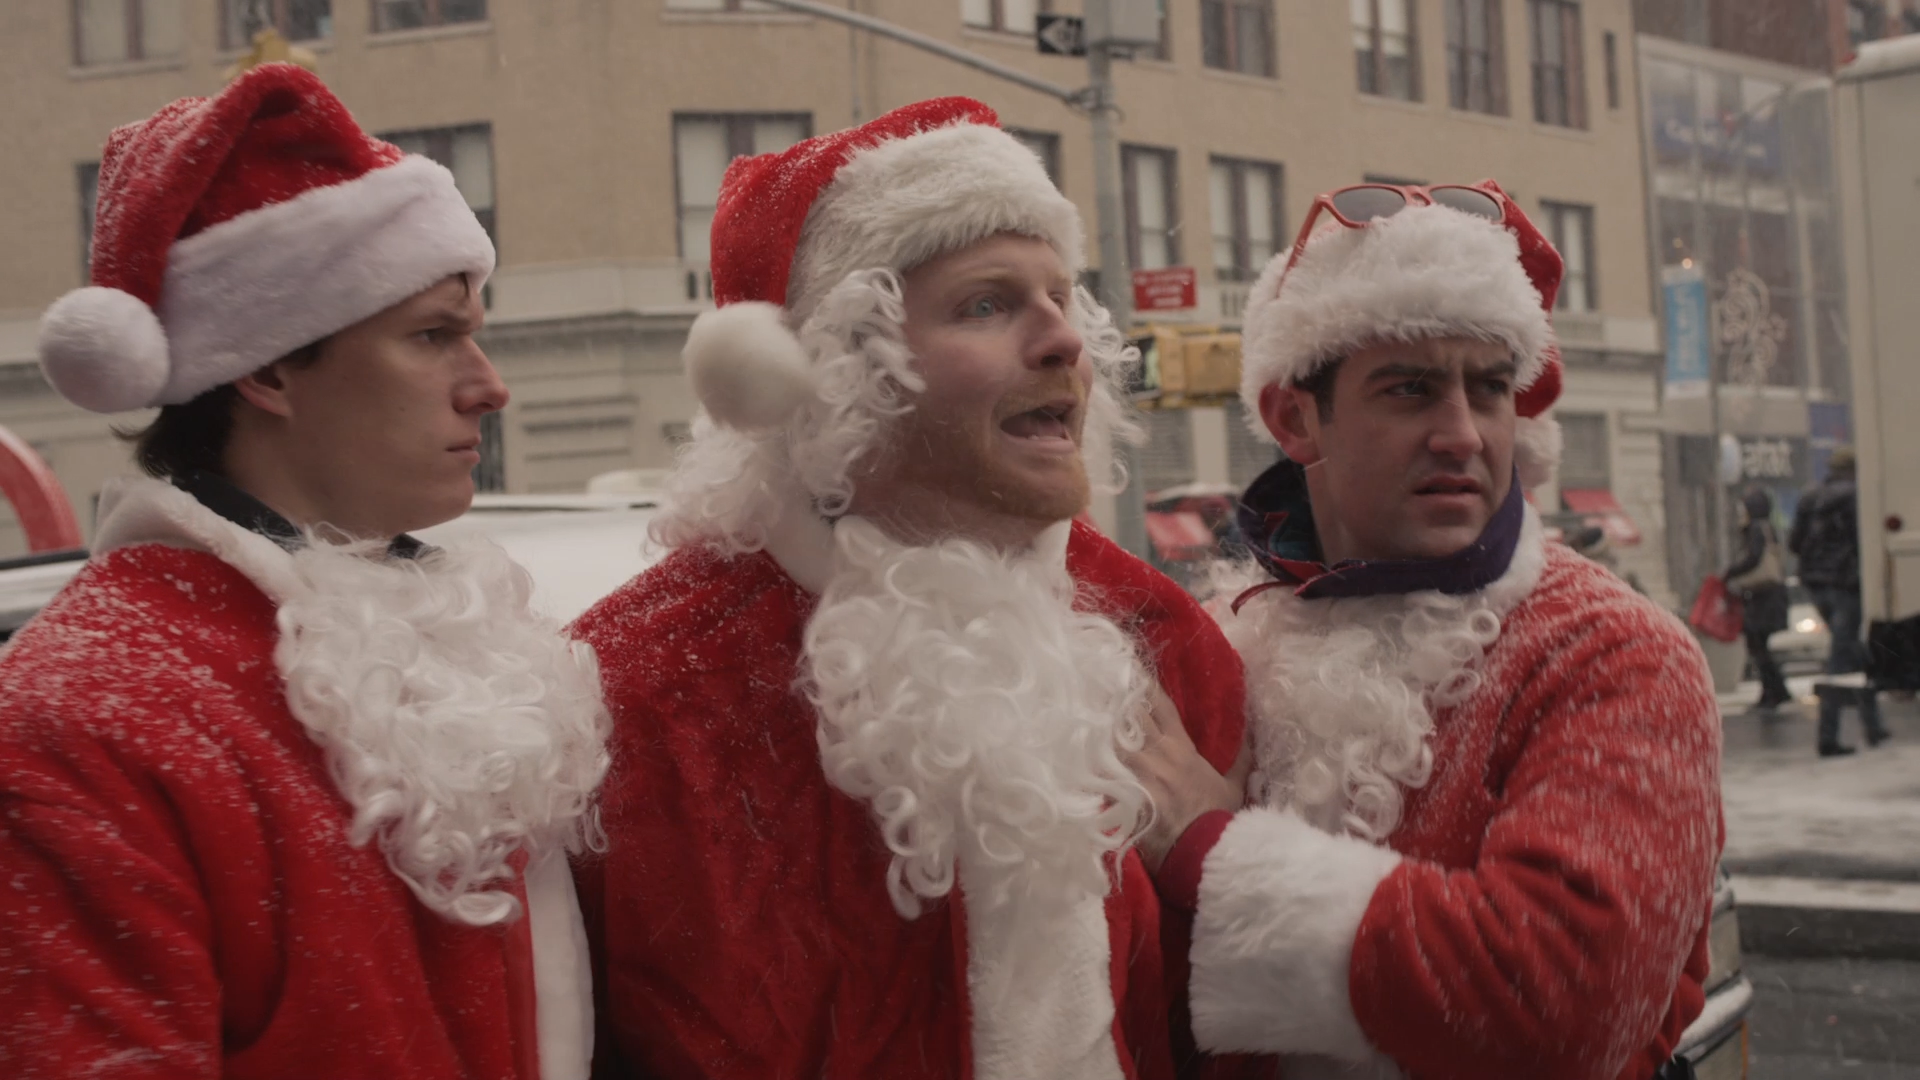 Bros+Episode+3_+_SantaConned_.00_03_39_22.Still012.png